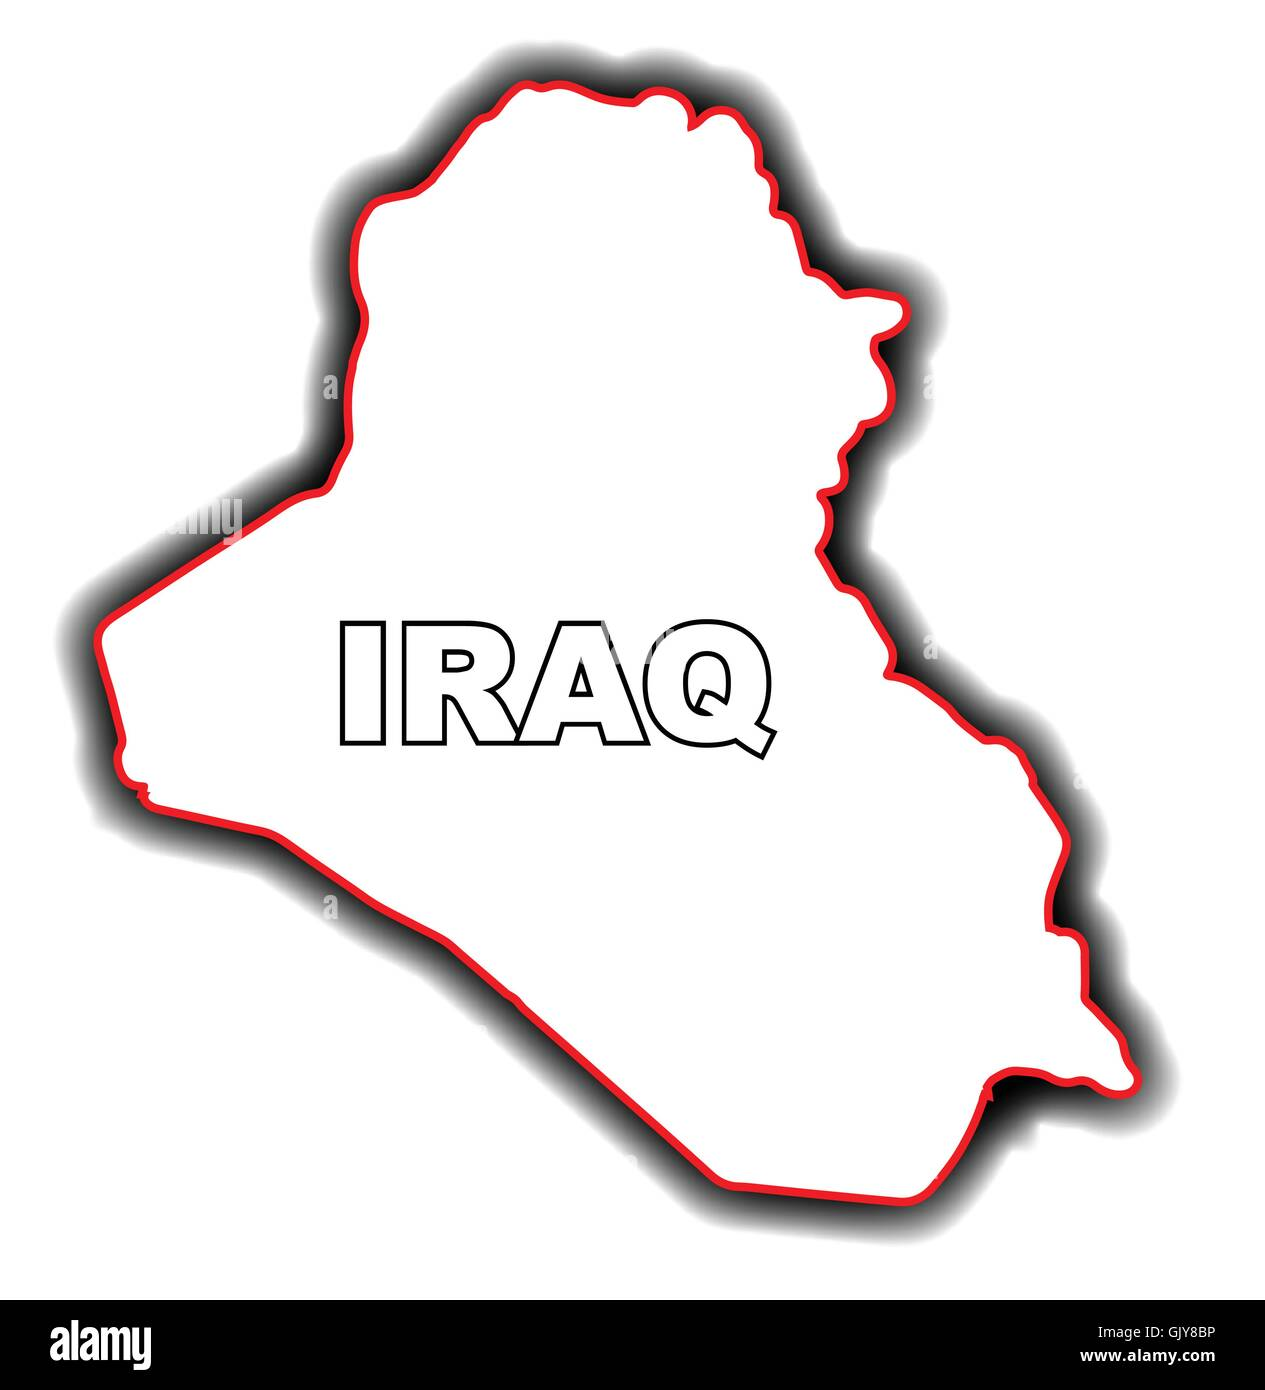 Outline Map of Iraq Stock Vector Art Illustration Vector Image